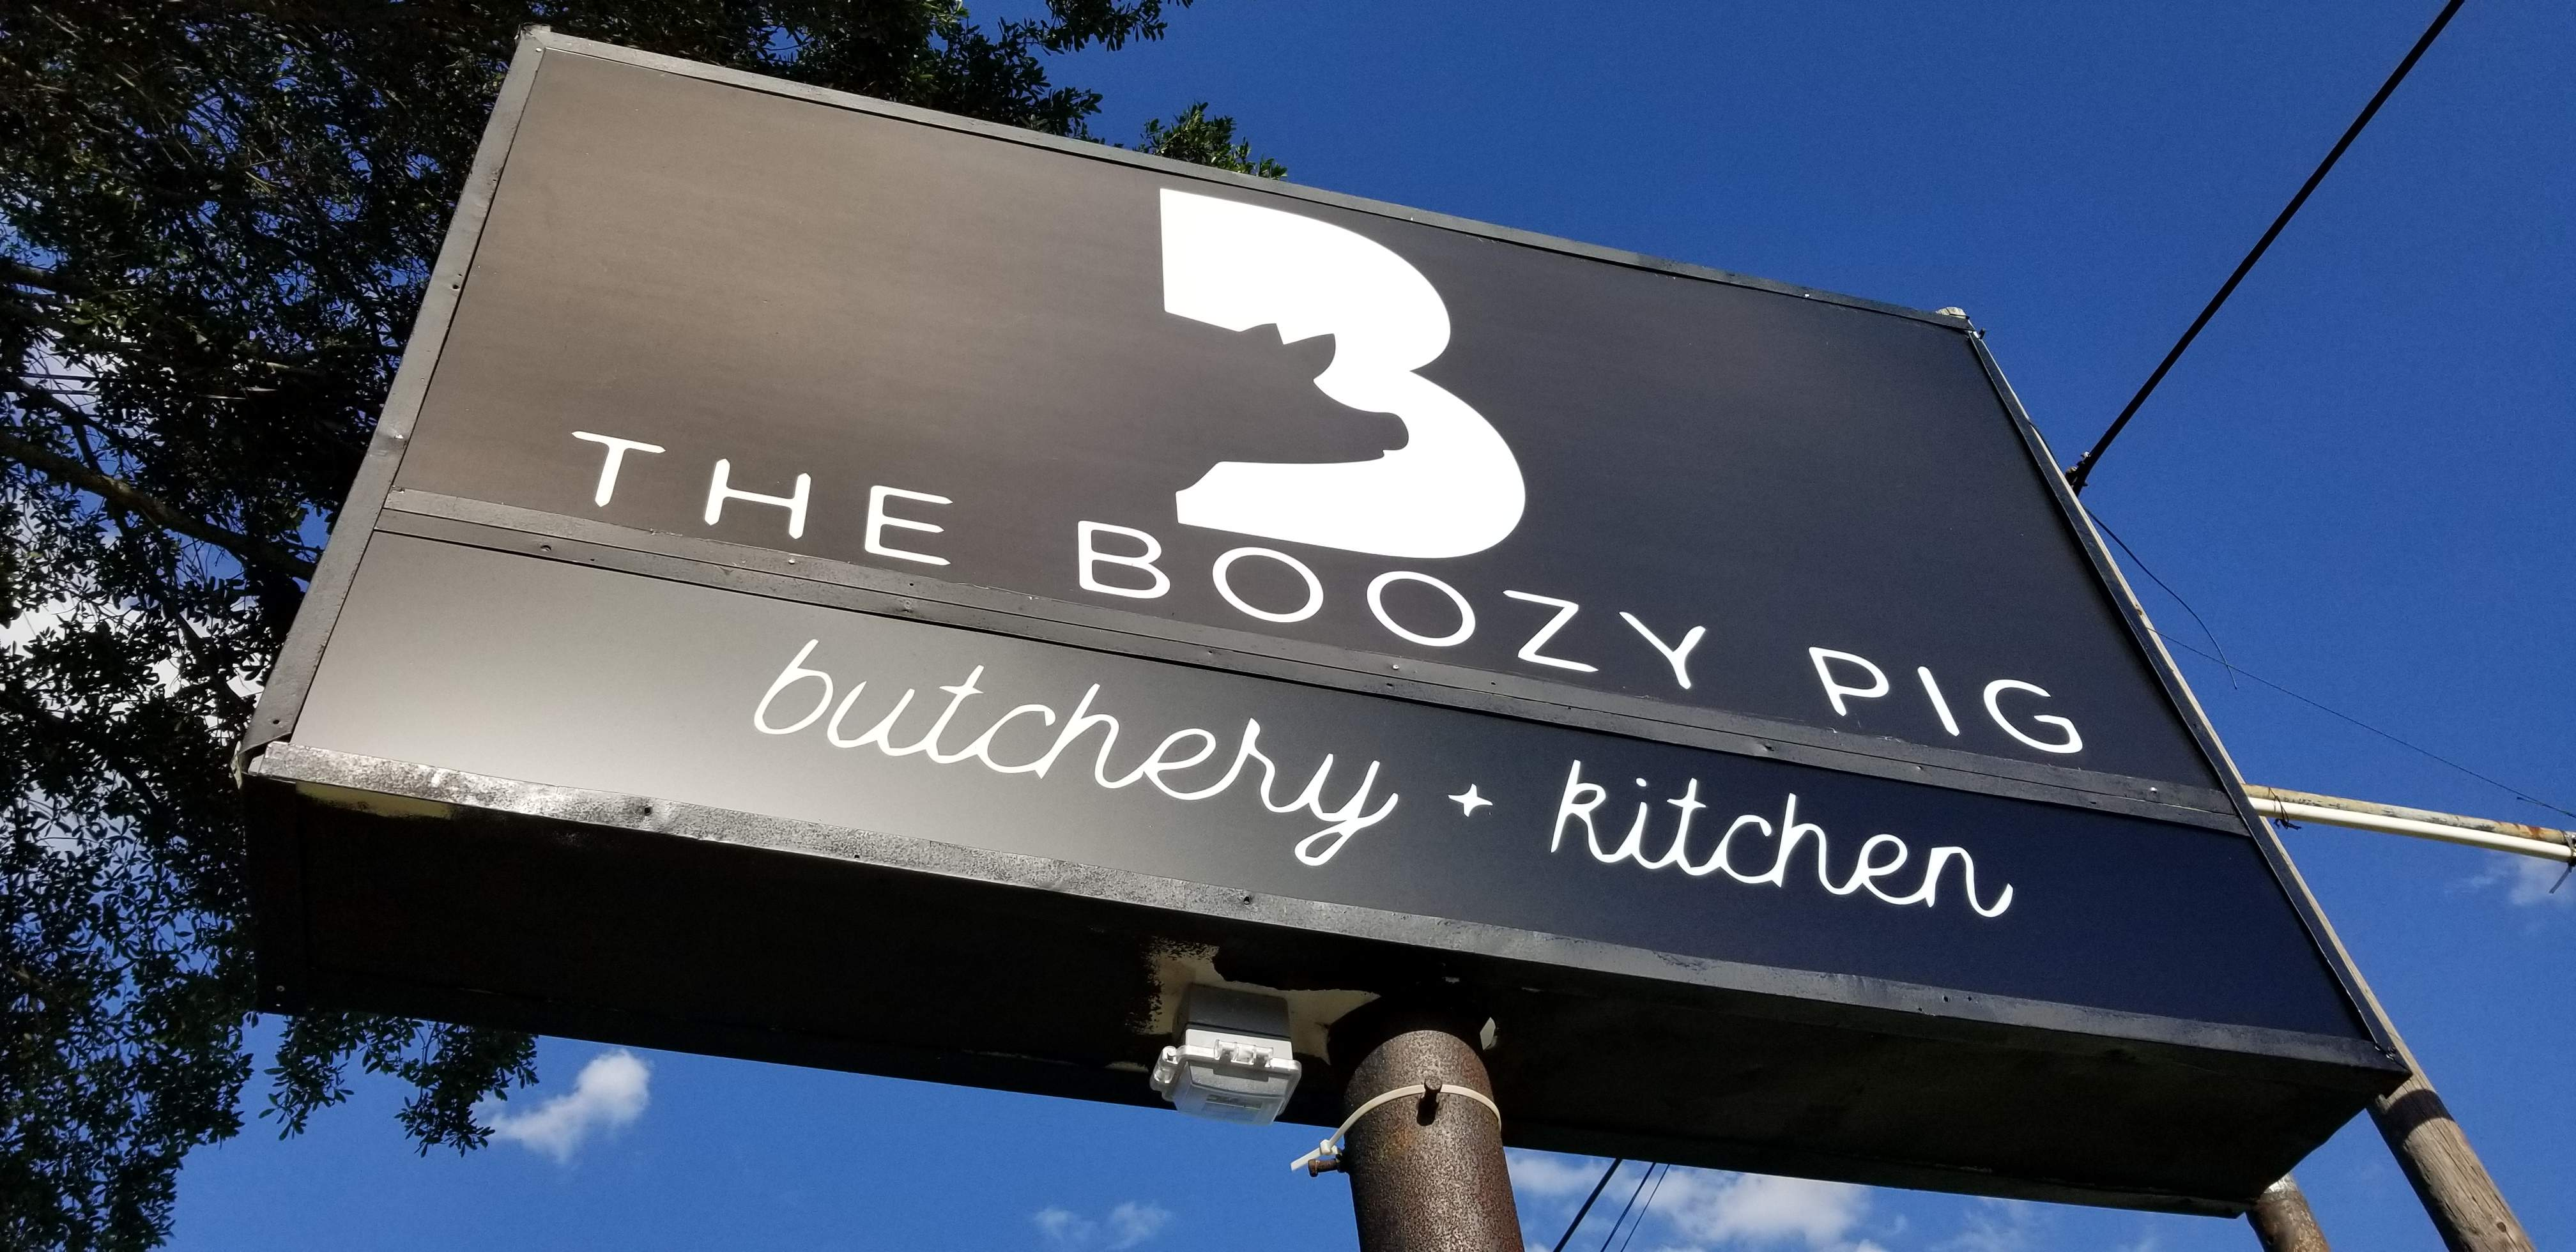 Tampa Bay Restaurant And Bar Openings The Boozy Pig In